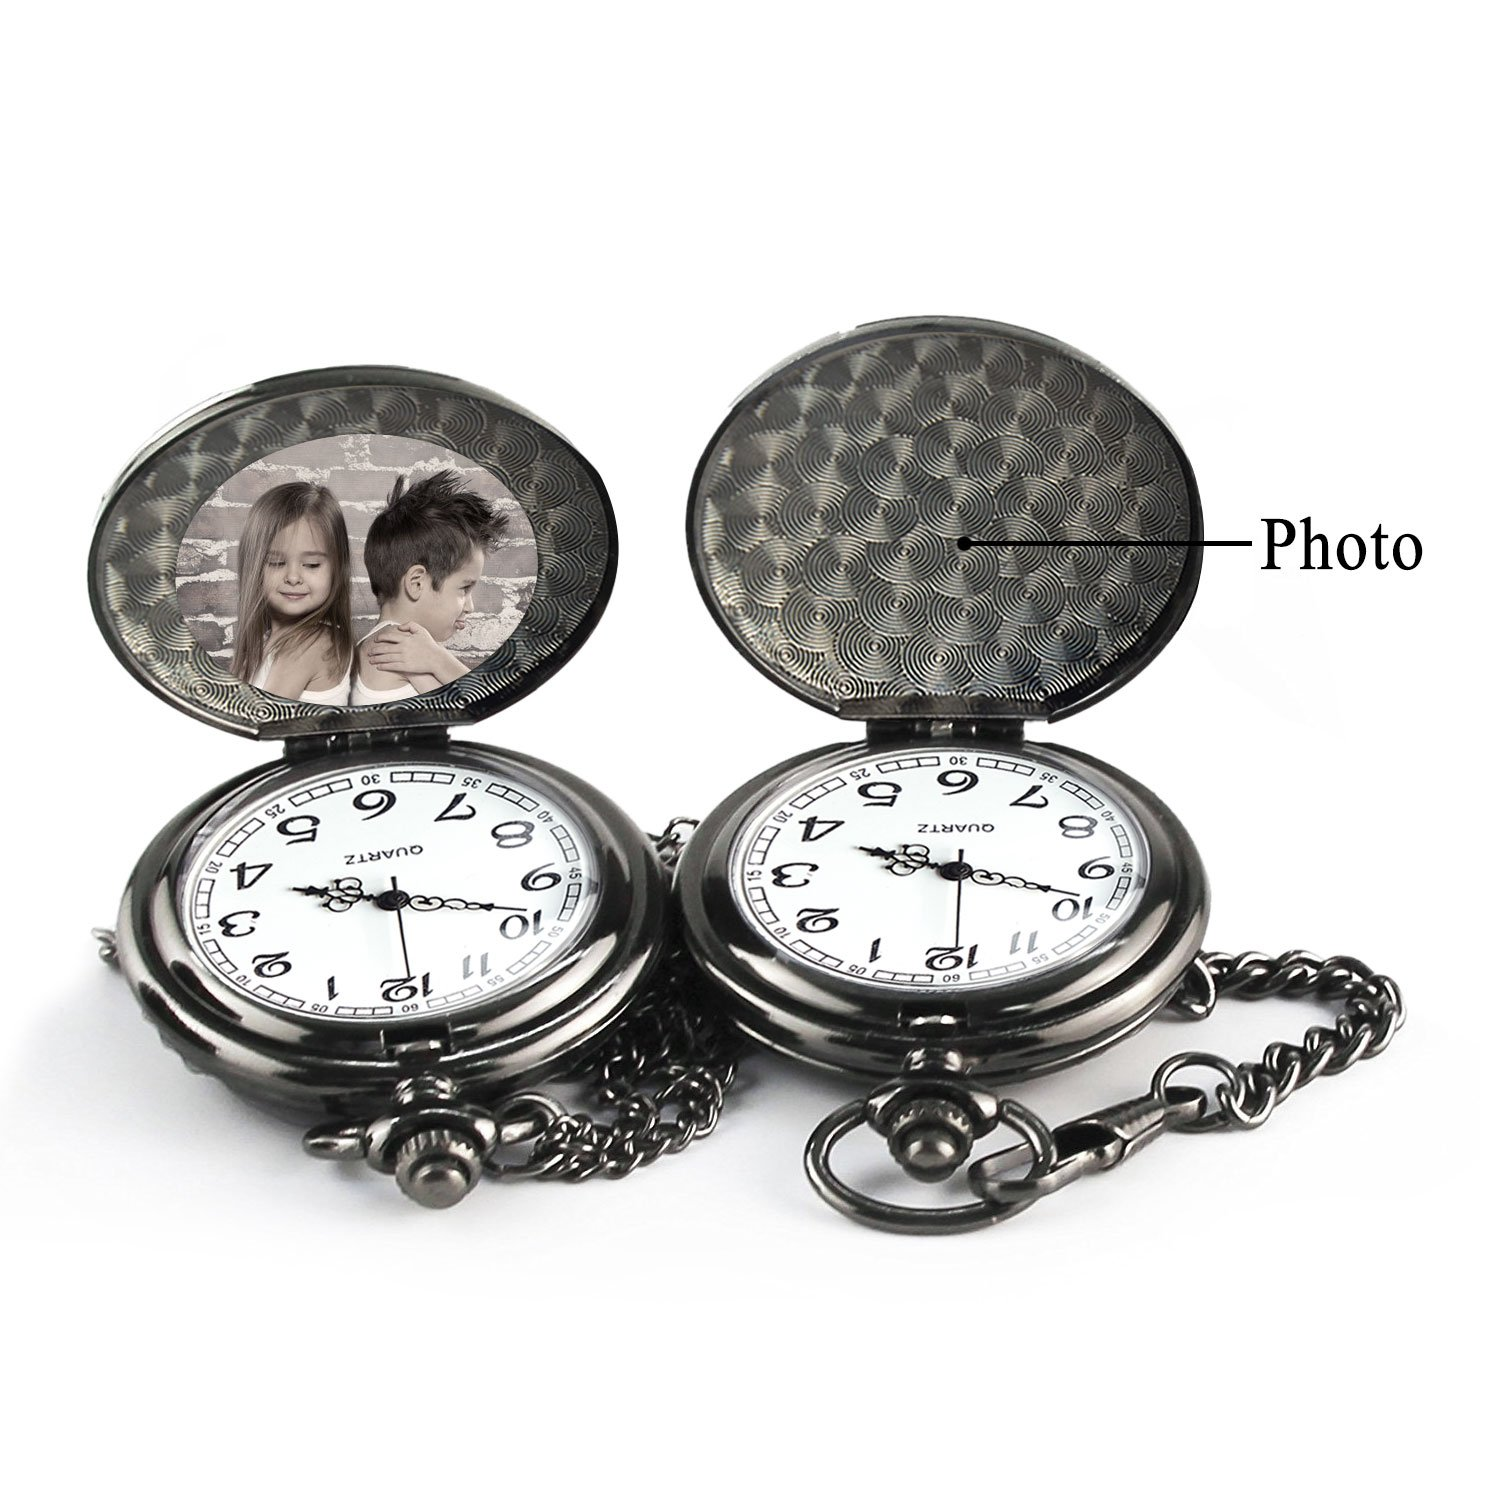 Brother Gifts for Birthday or Anniversaries Graduation Novelty Gift to Big Brother from Brother or Sister Engraved Pocket Watch with Gift Box for Men (Love Sister Black) by Samuel (Image #3)